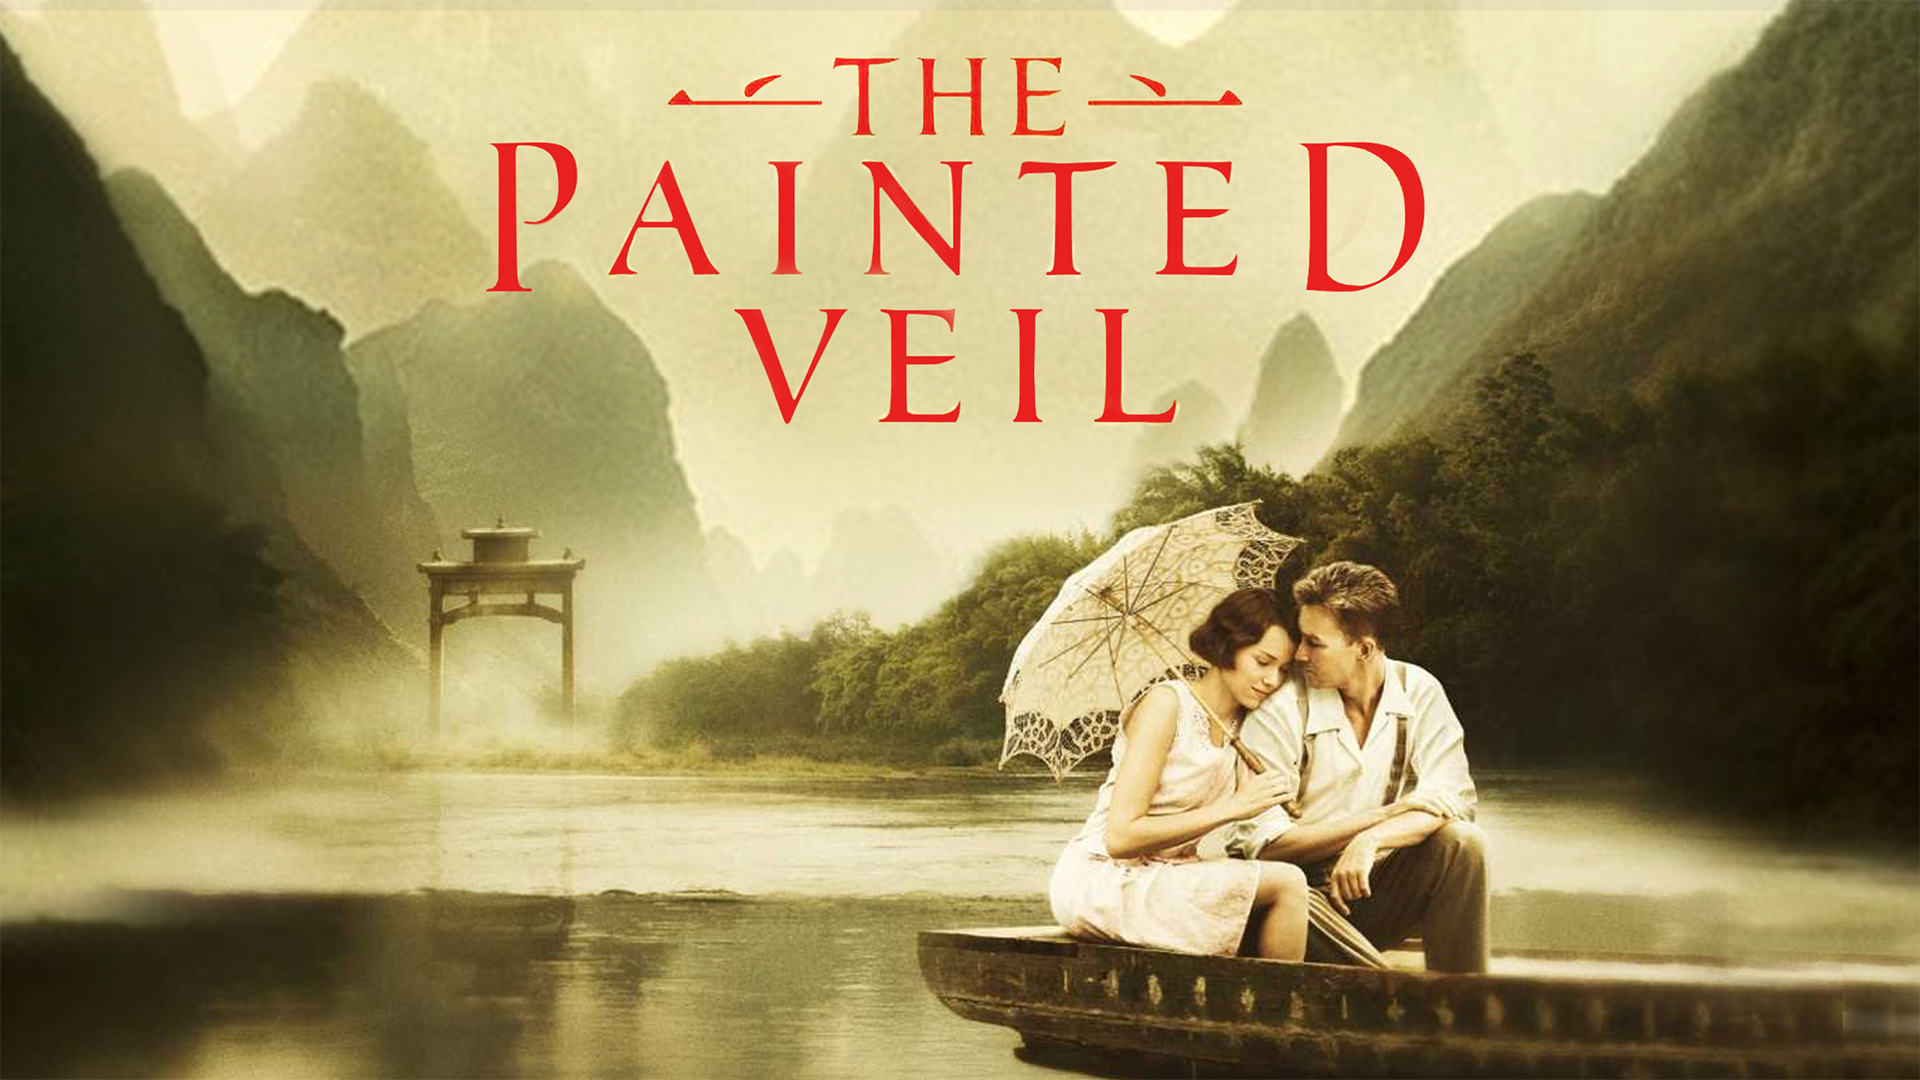 The Painted Veil (2007)